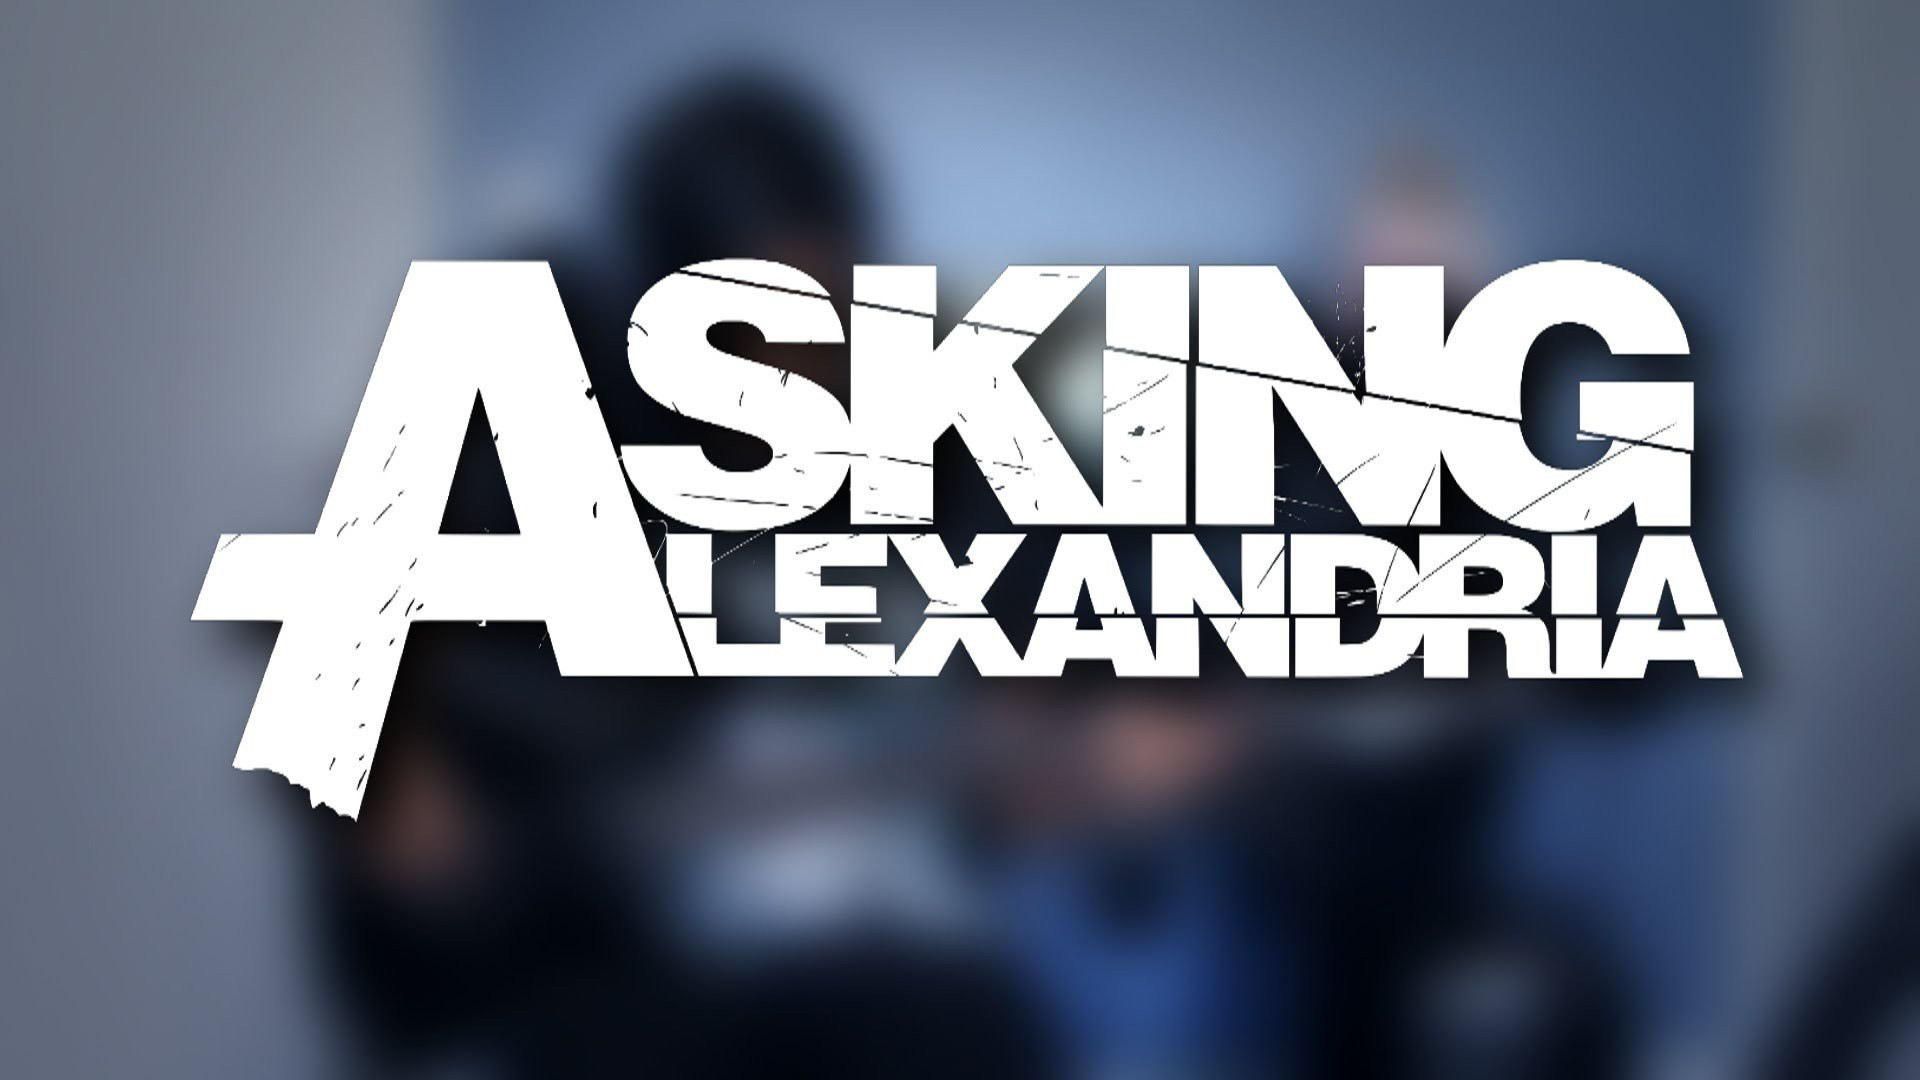 1920x1080  Wallpapers Asking Alexandria Live Jan Comments Free Hd 1024x768 .